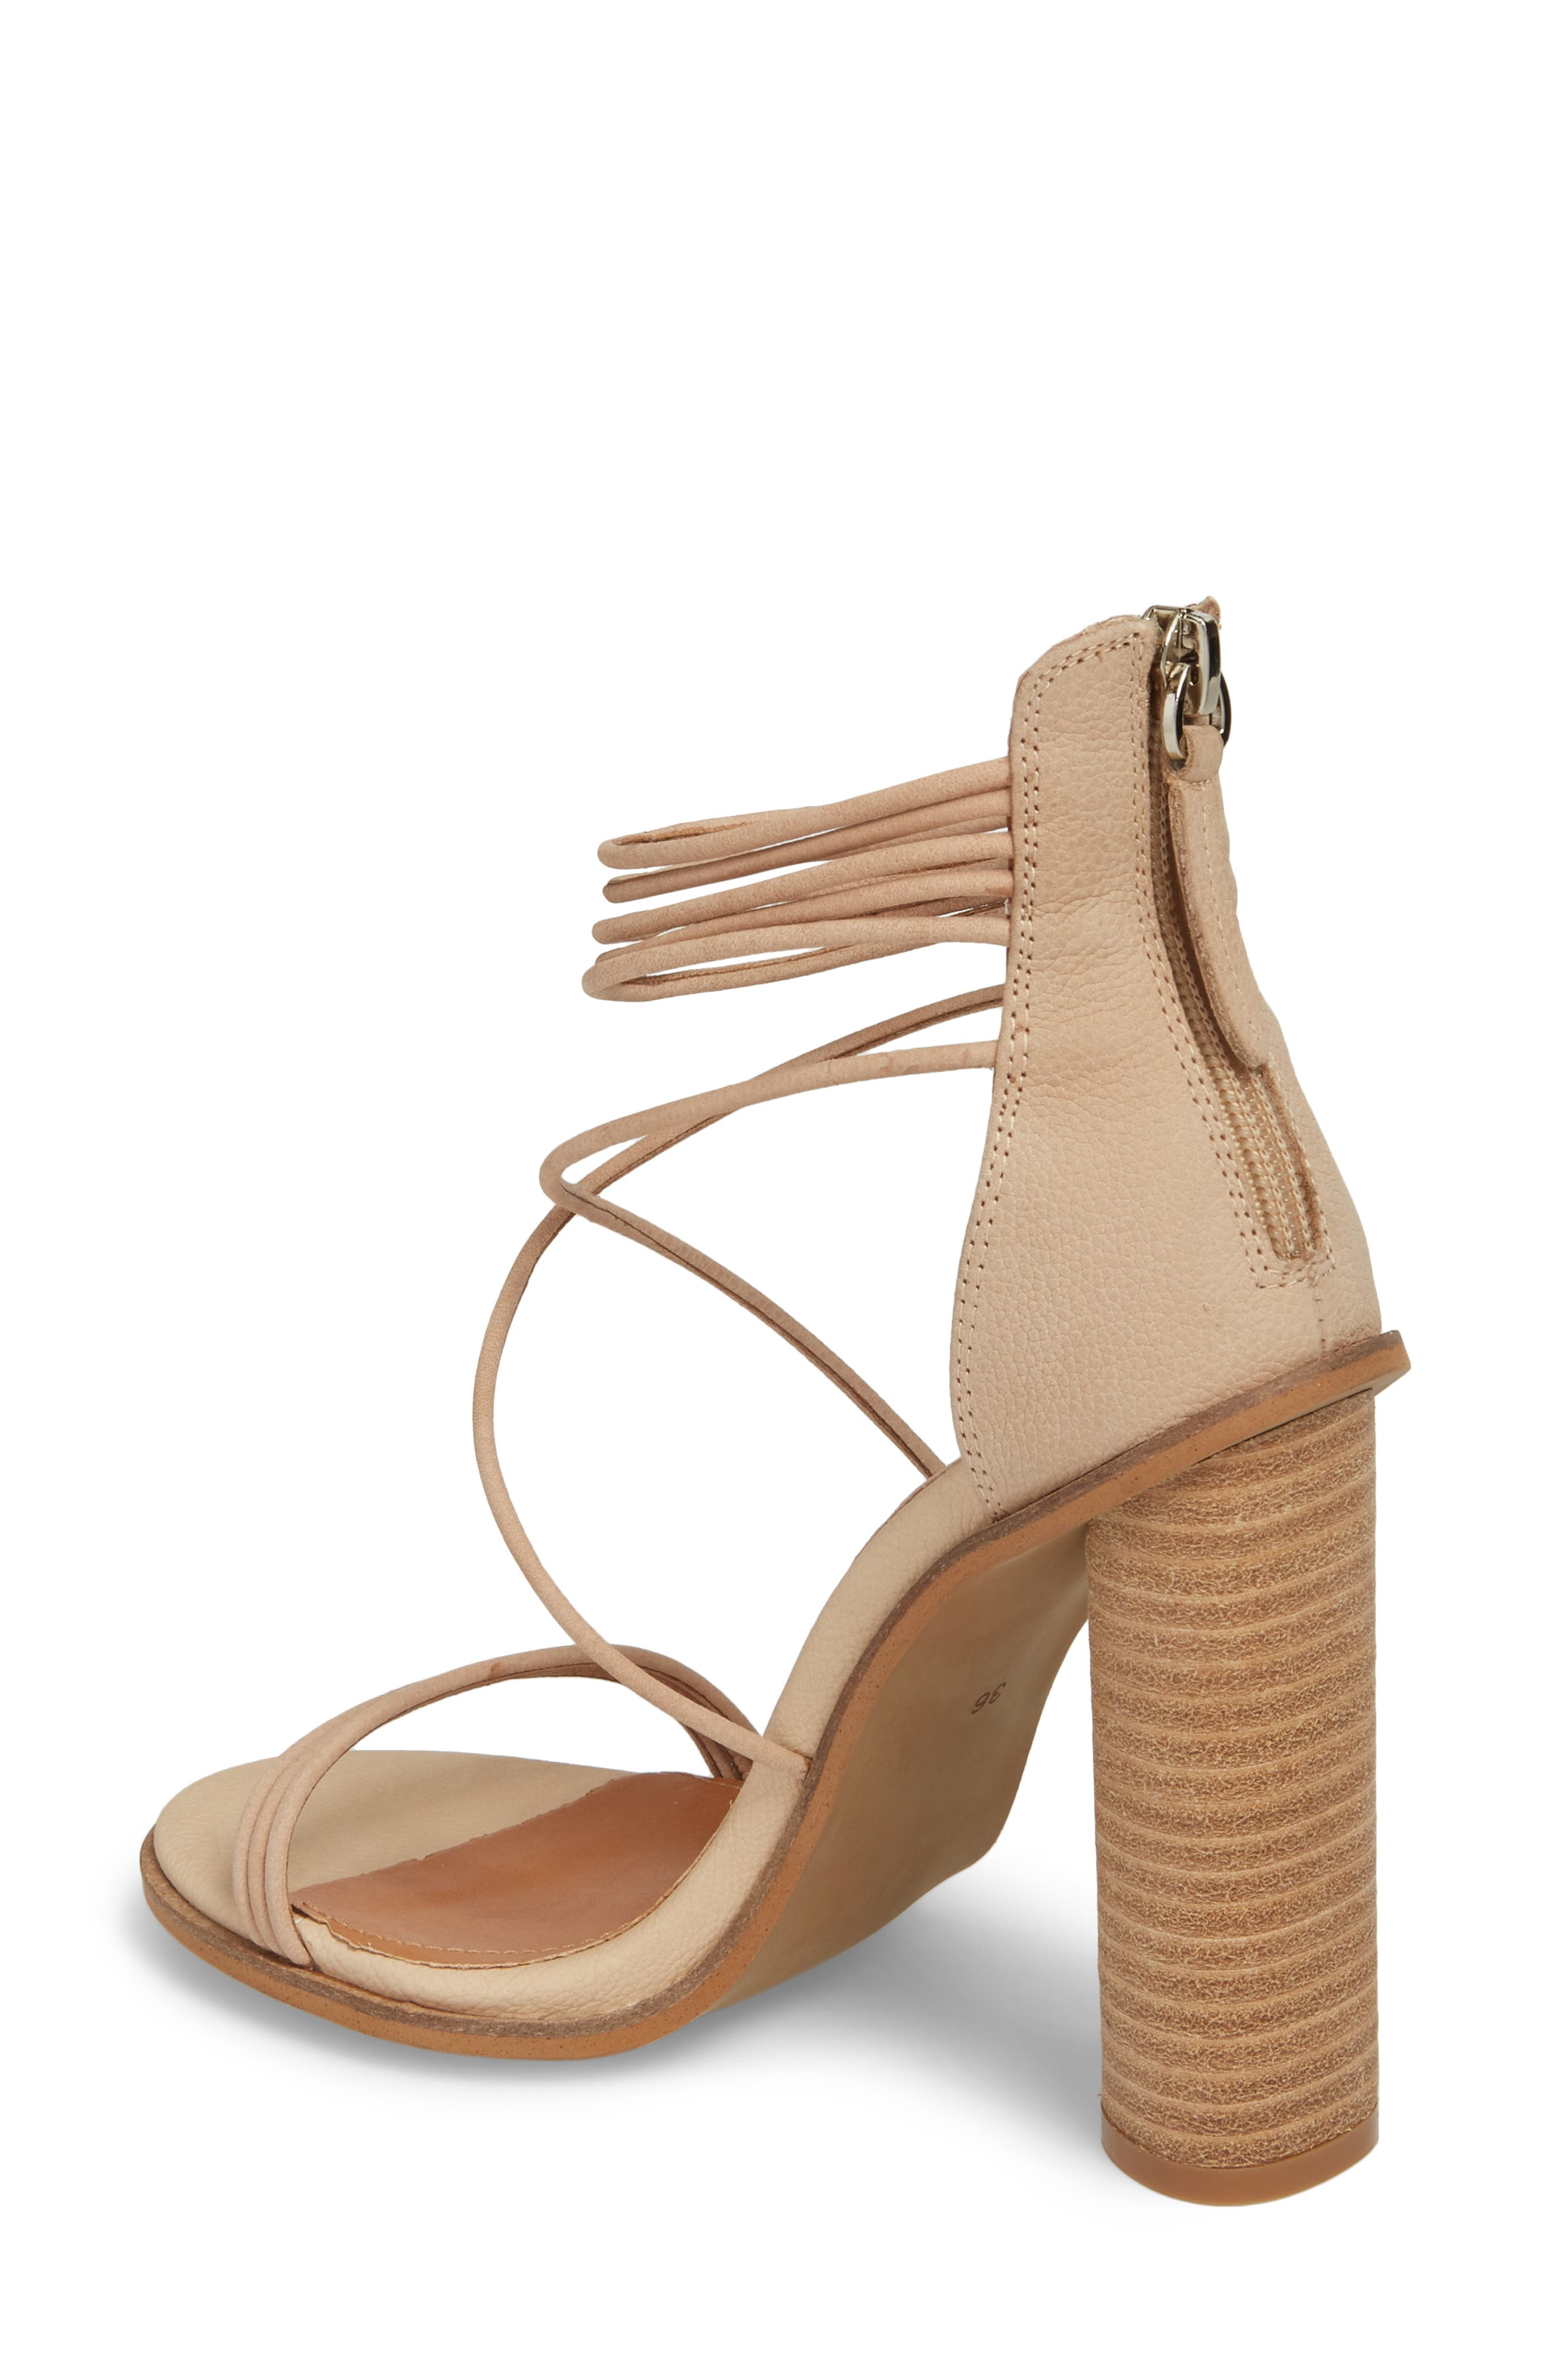 Aflux Tall Strappy Sandal,                             Alternate thumbnail 2, color,                             NATURAL LEATHER